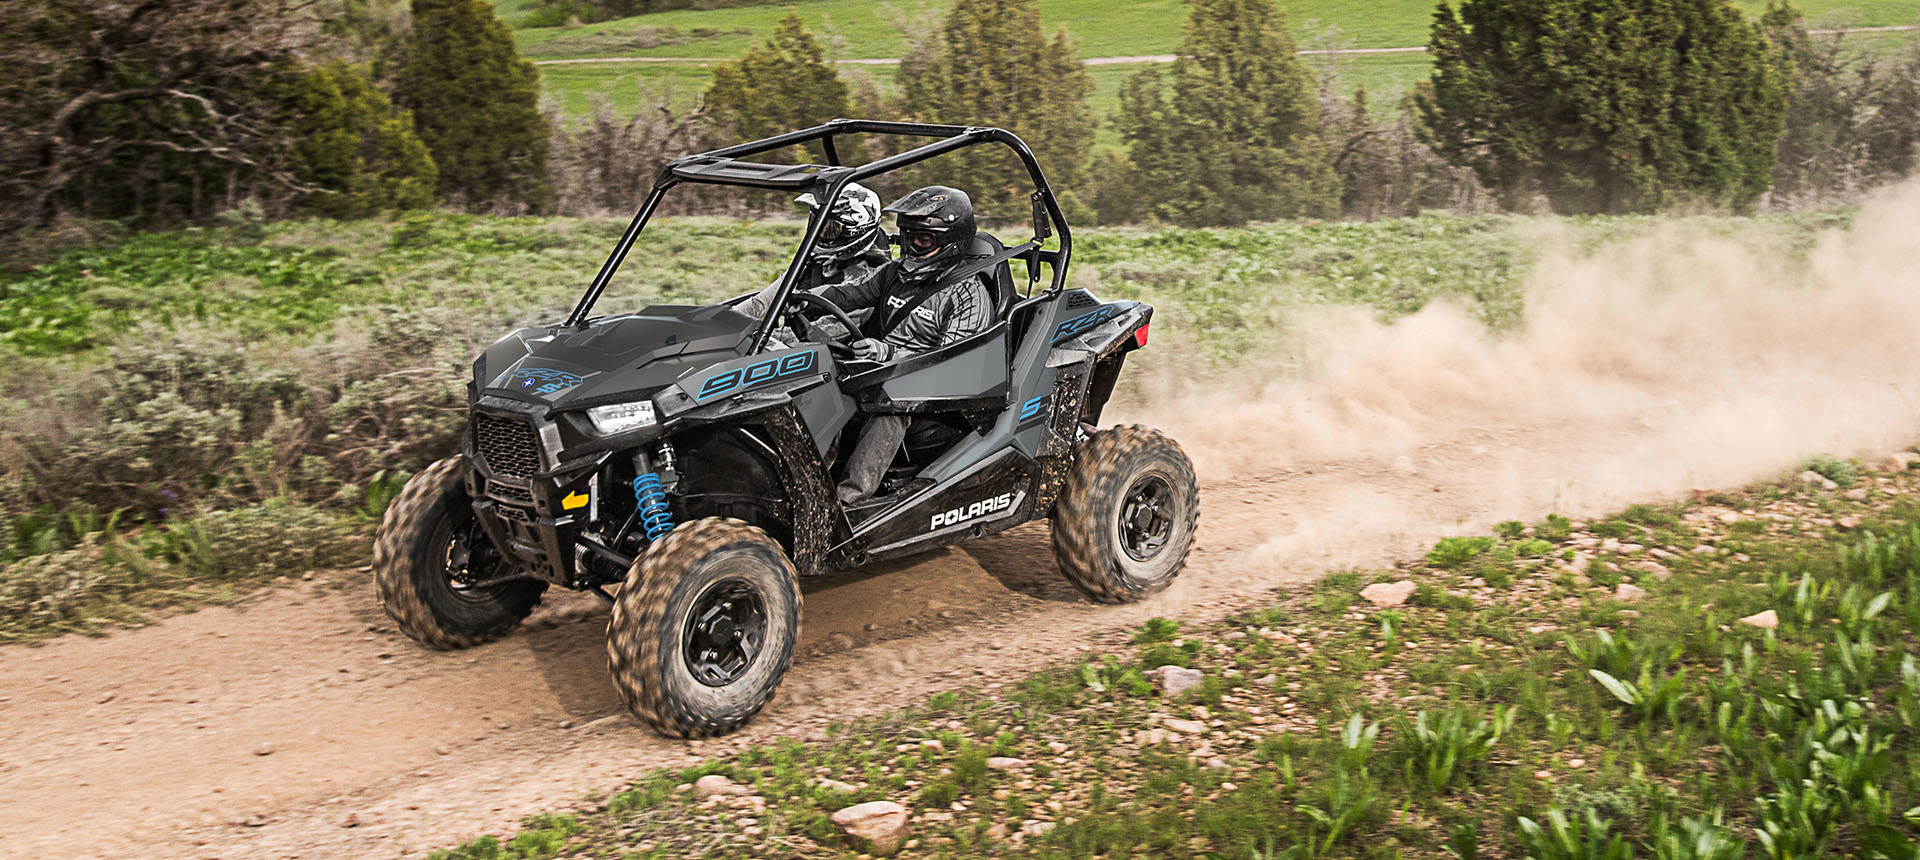 2020 RZR<sup>®</sup> Trail S 900 Instagram image 2